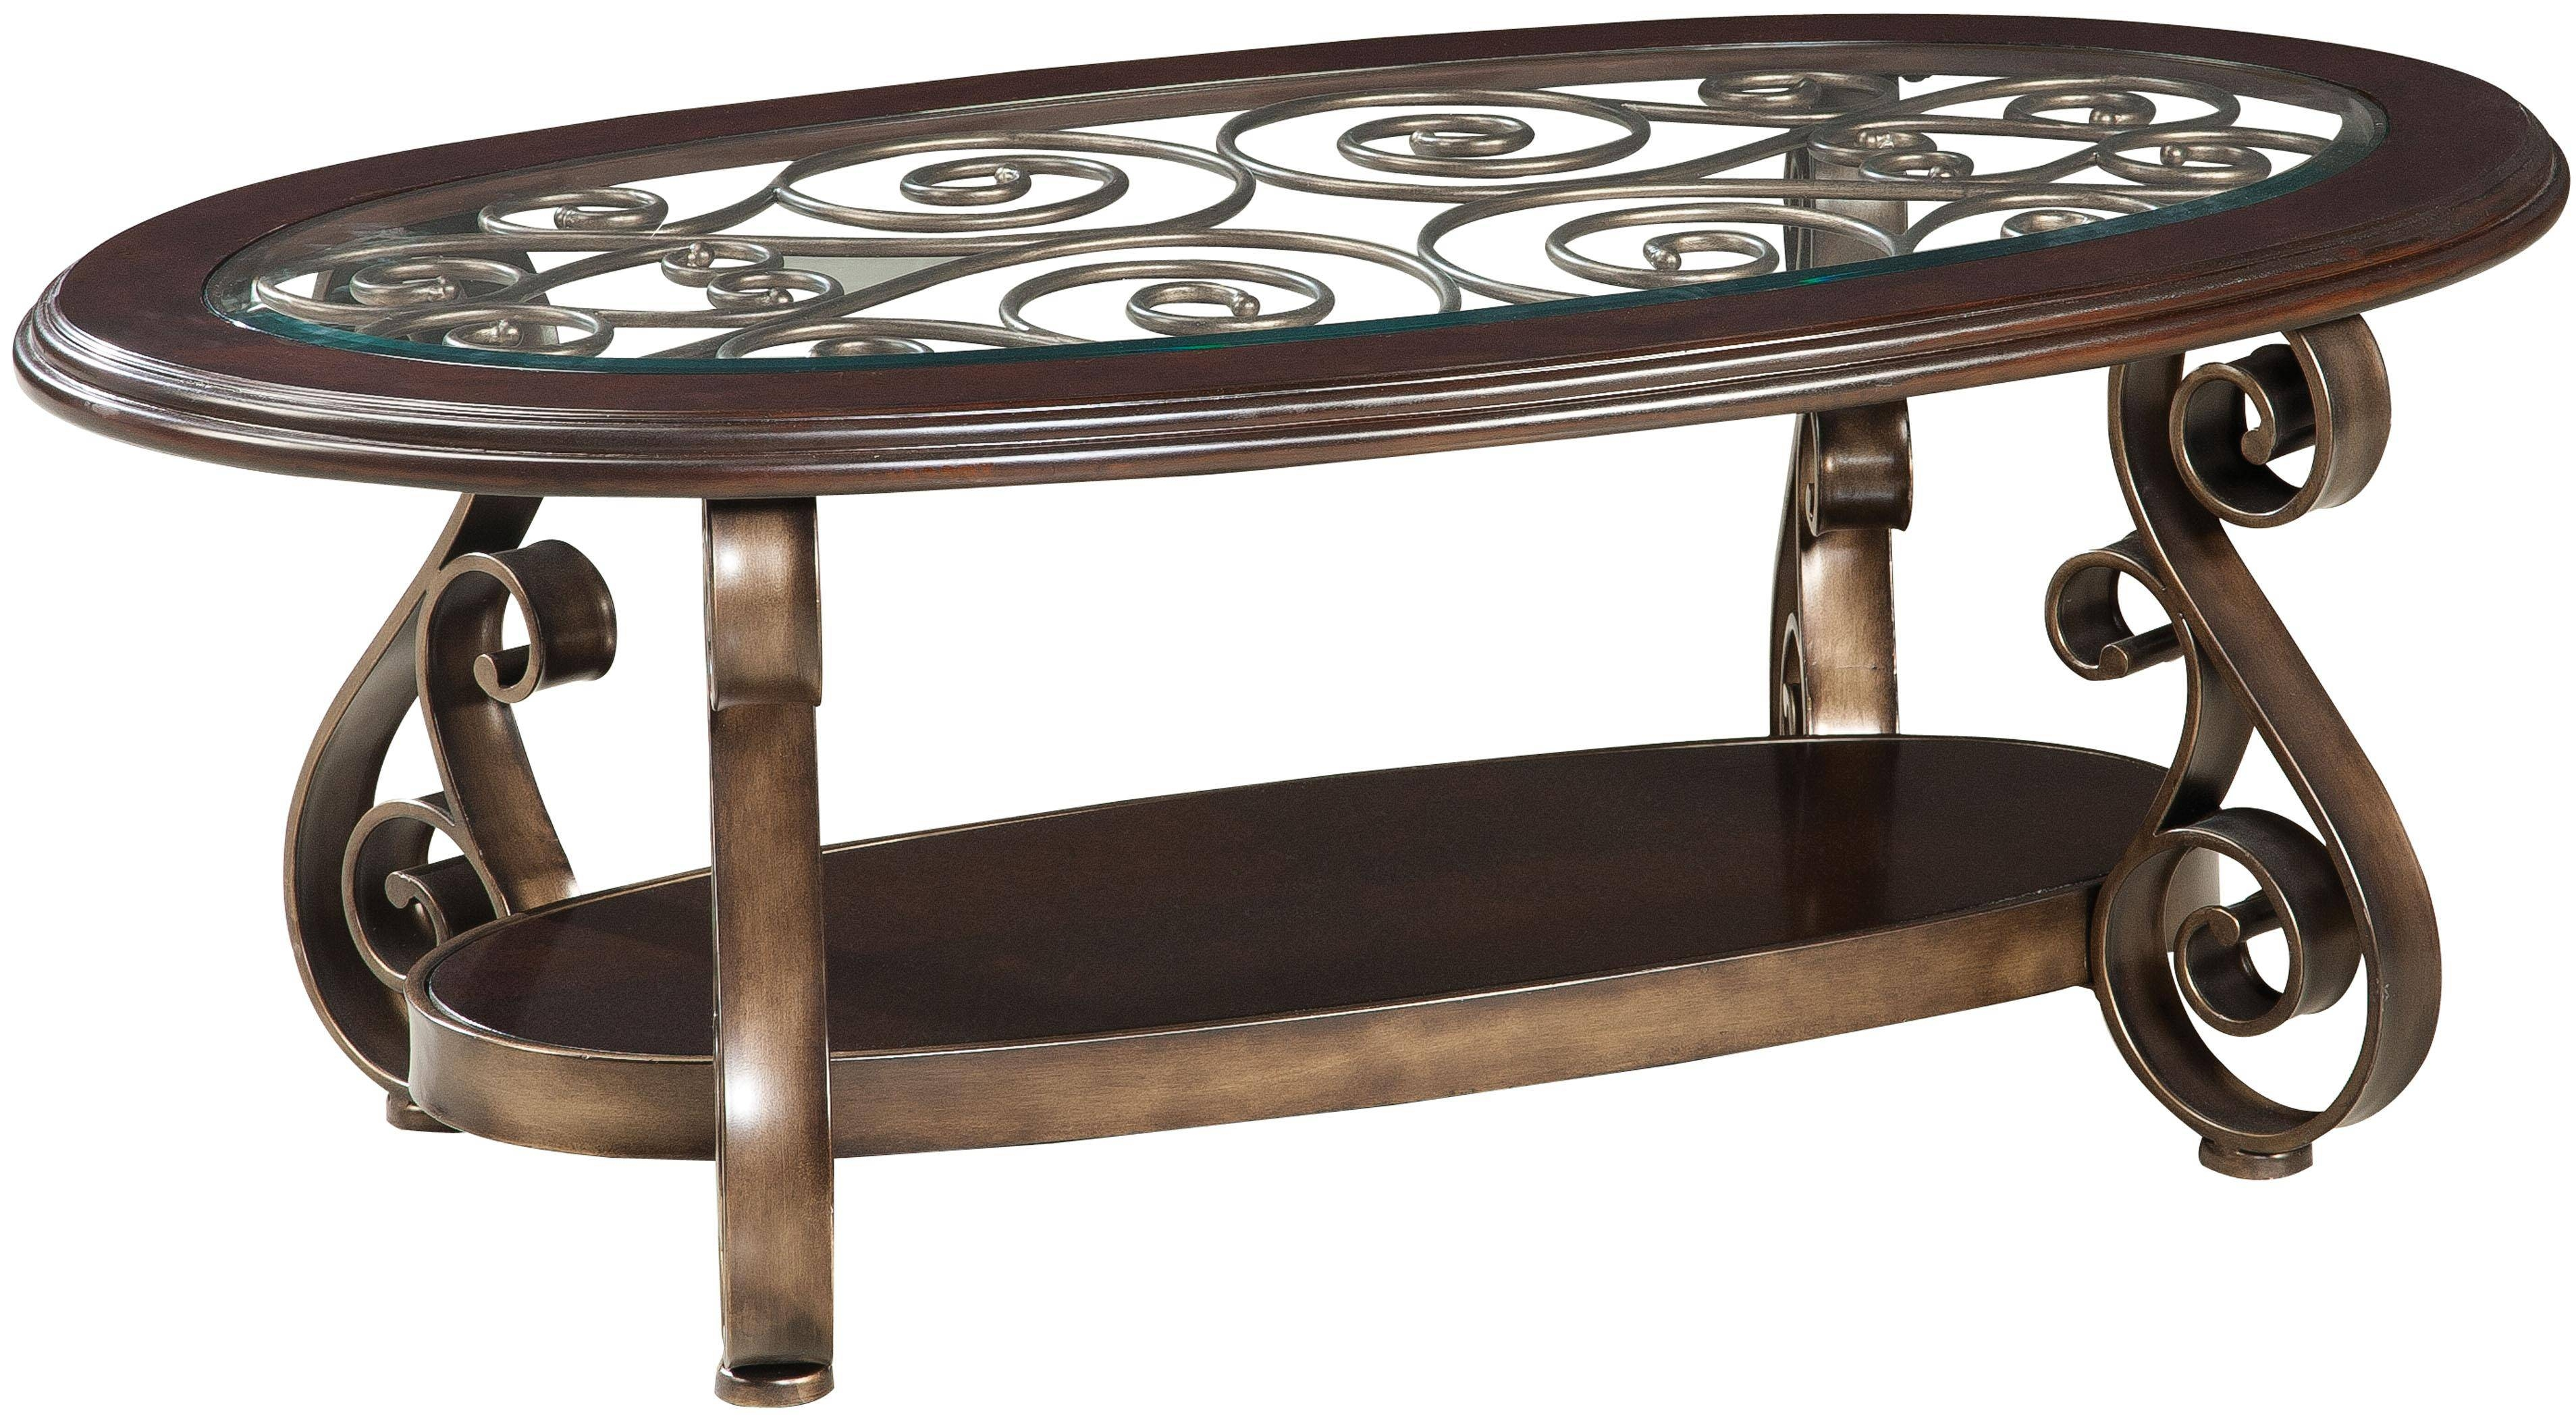 Oval Dark Brown Wood Carving Coffee Table With Glass Top And Shelf with regard to Oval Glass And Wood Coffee Tables (Image 25 of 30)